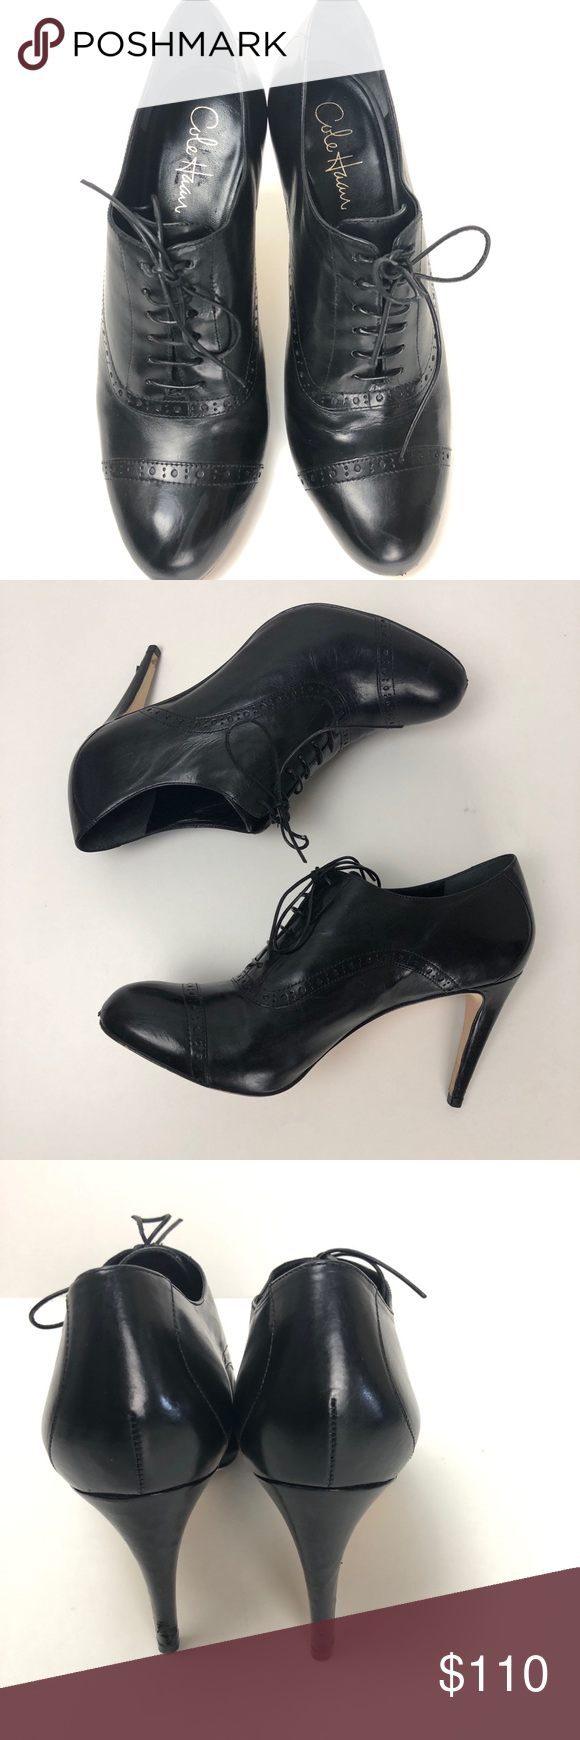 Cole Haan Nike Air Oxford heels size 9